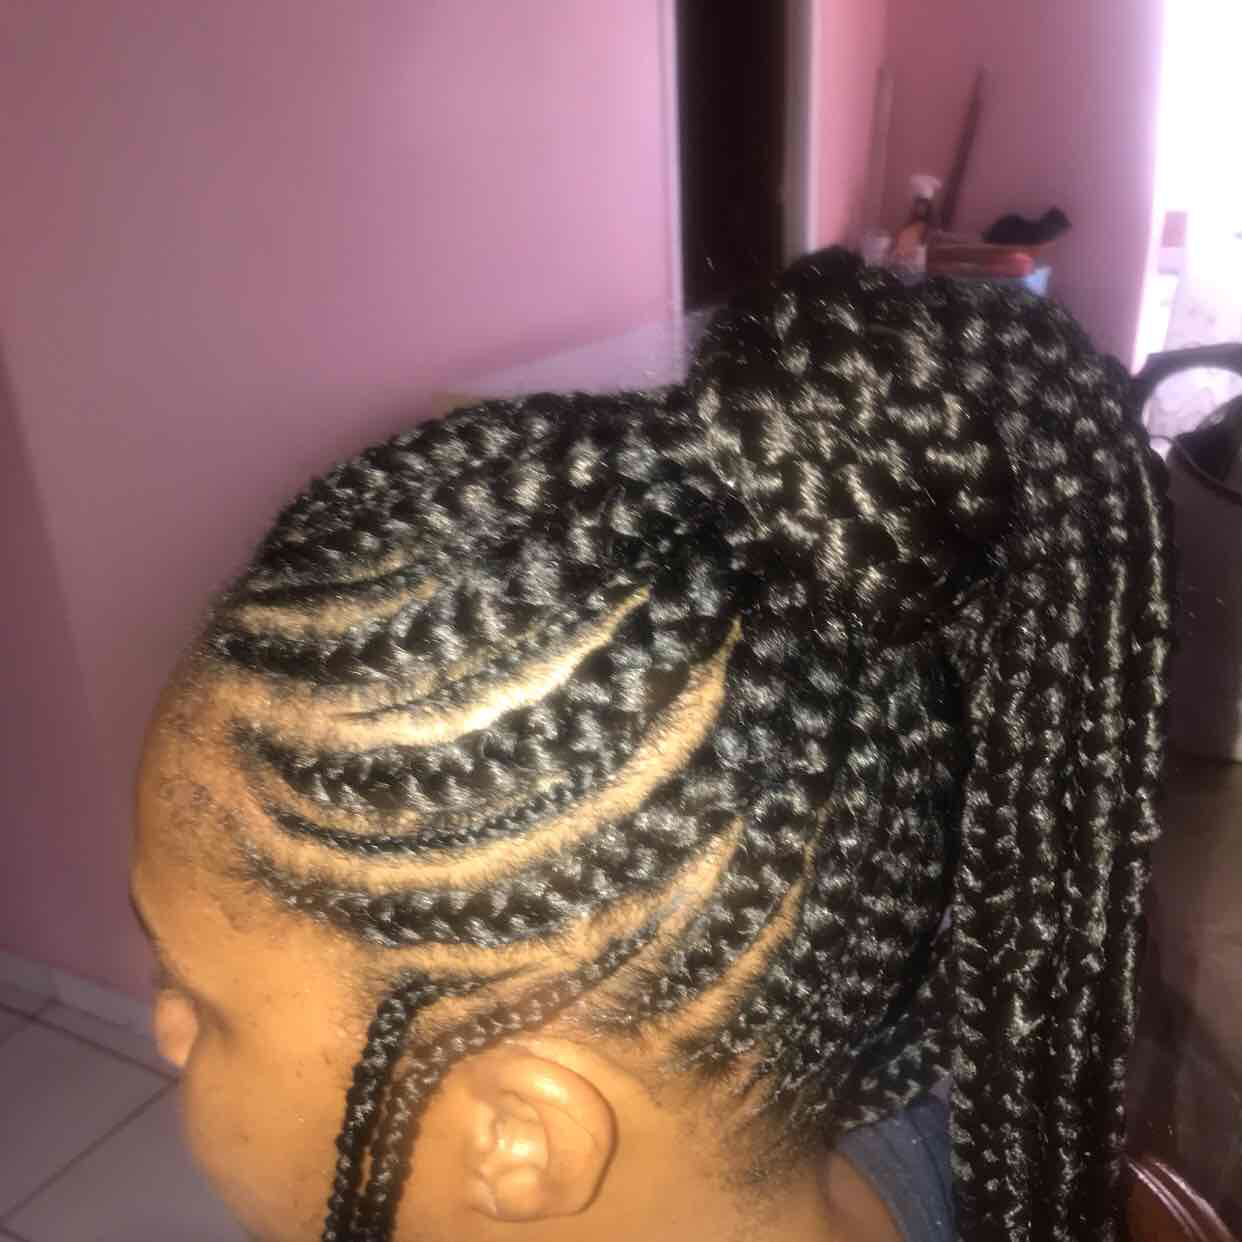 salon de coiffure afro tresse tresses box braids crochet braids vanilles tissages paris 75 77 78 91 92 93 94 95 HCZXPXBT